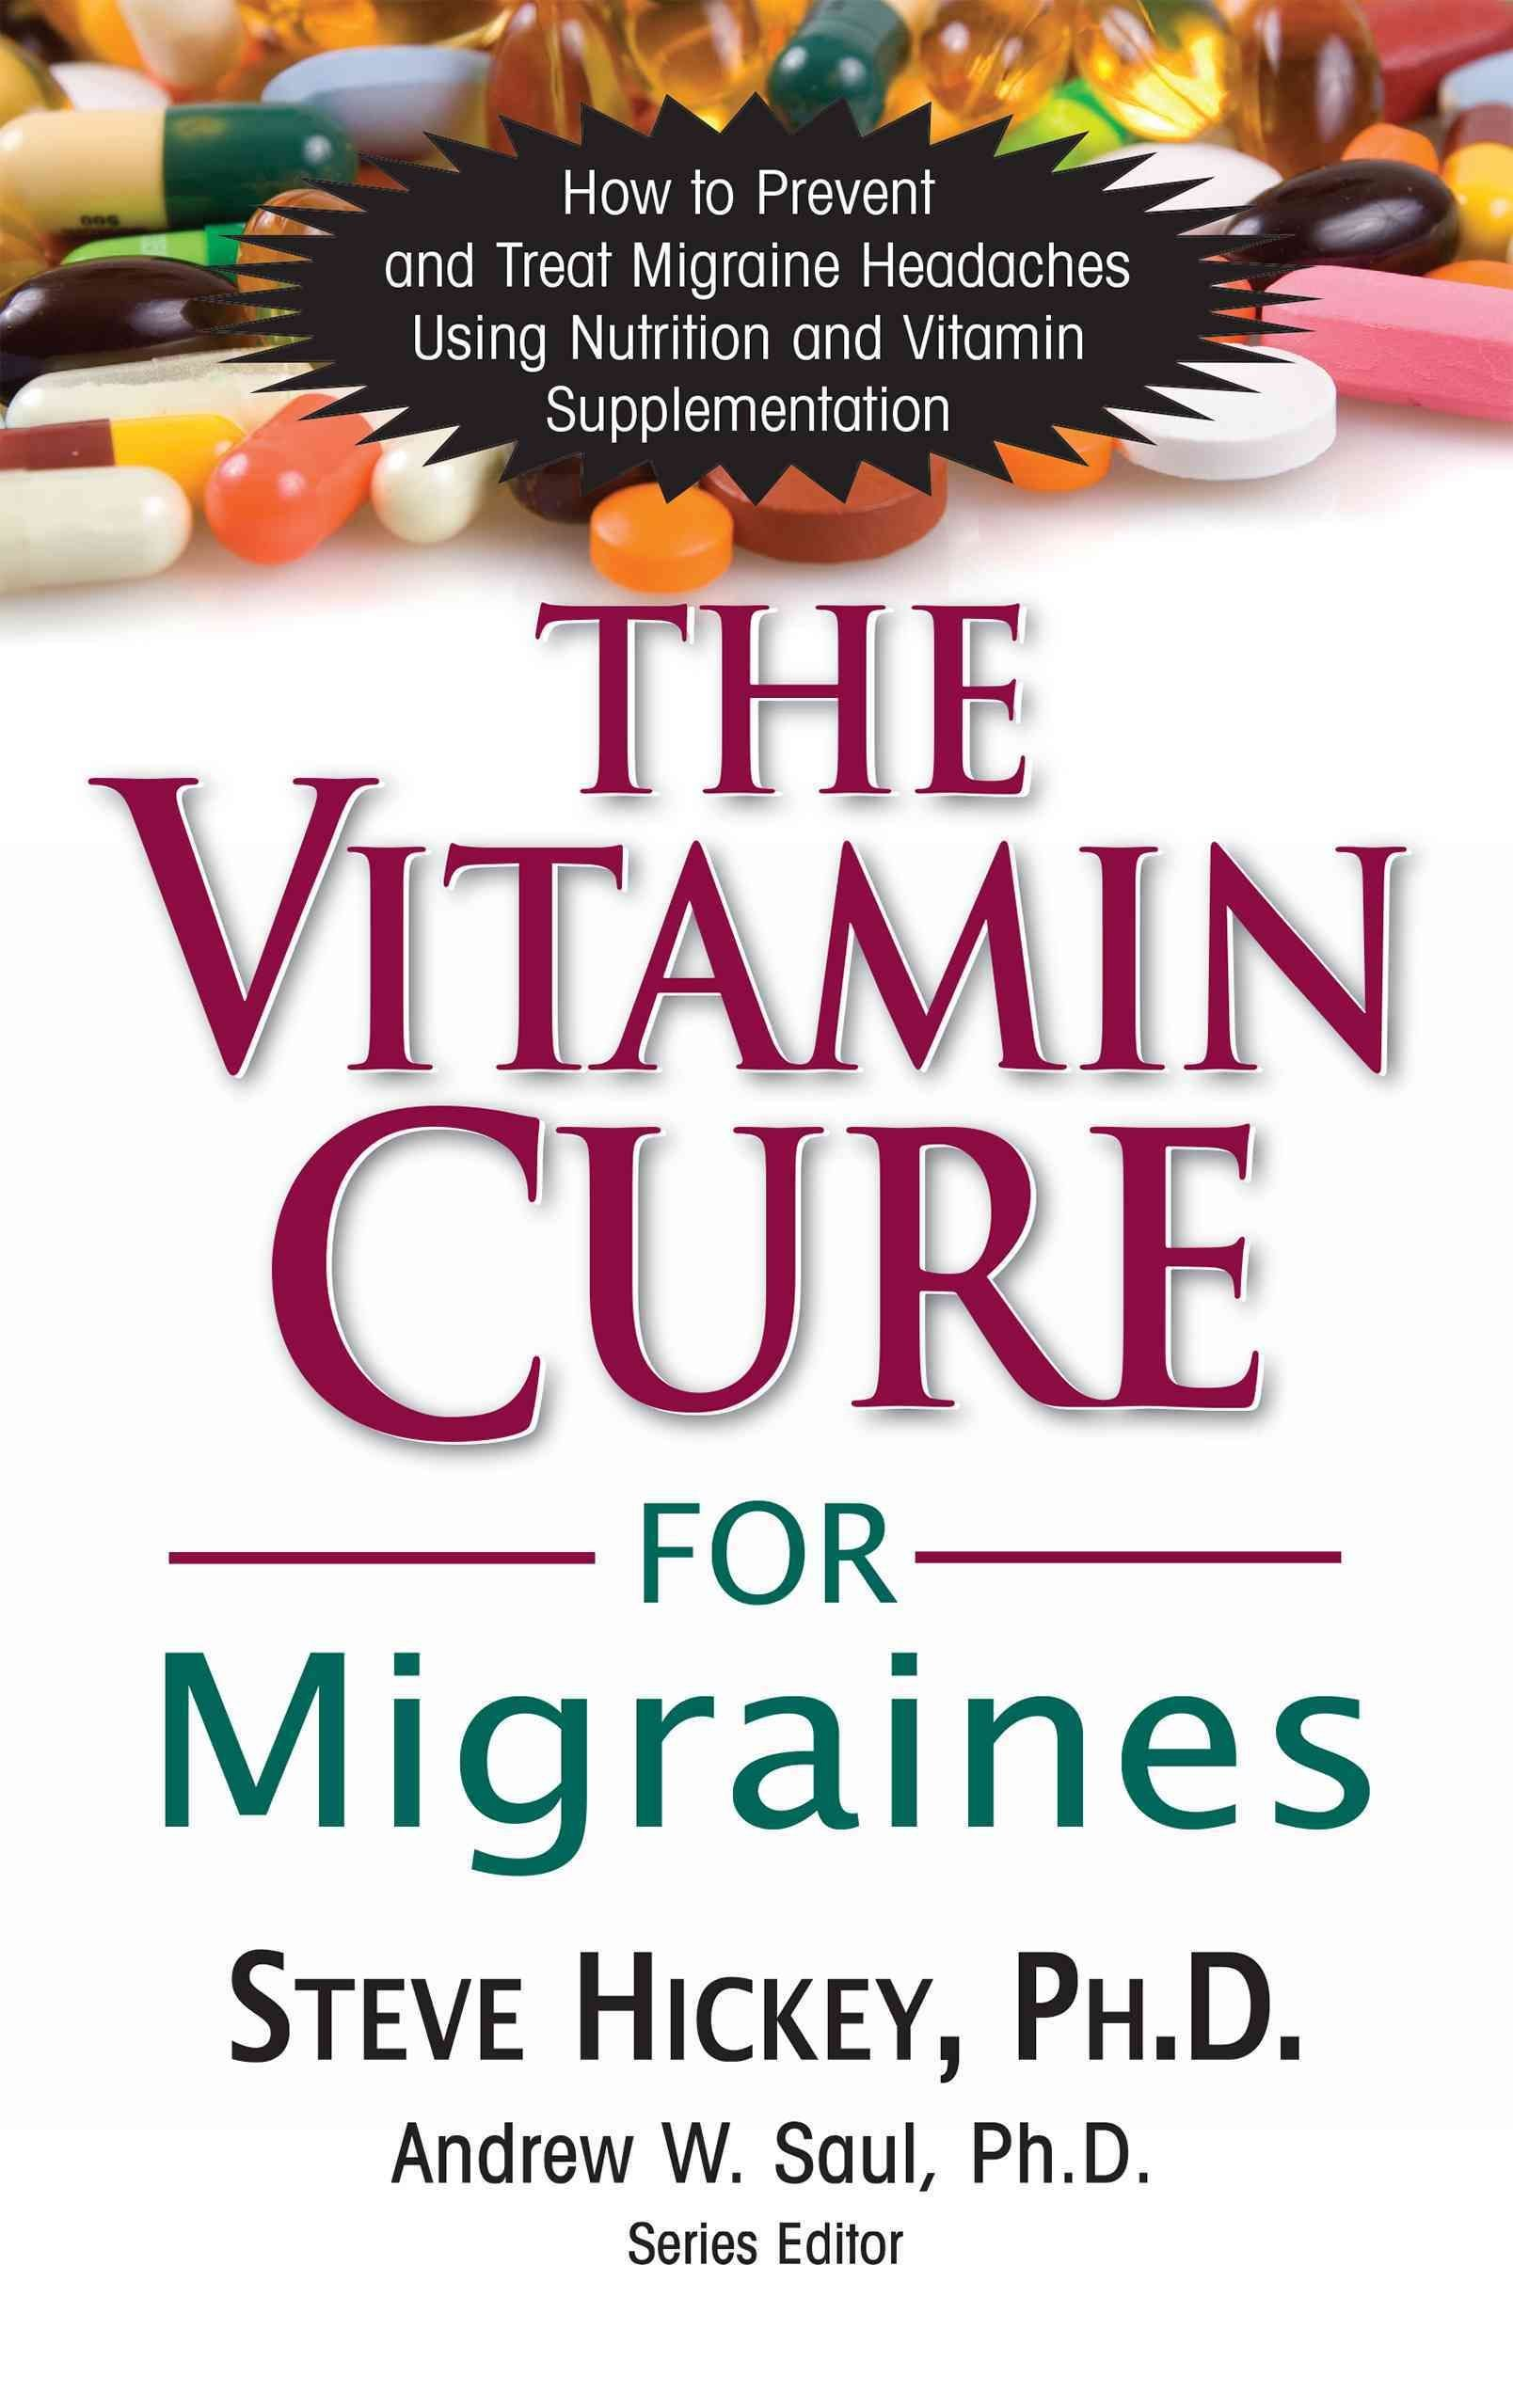 The Vitamin Cure for Migraines - Steve Hickey